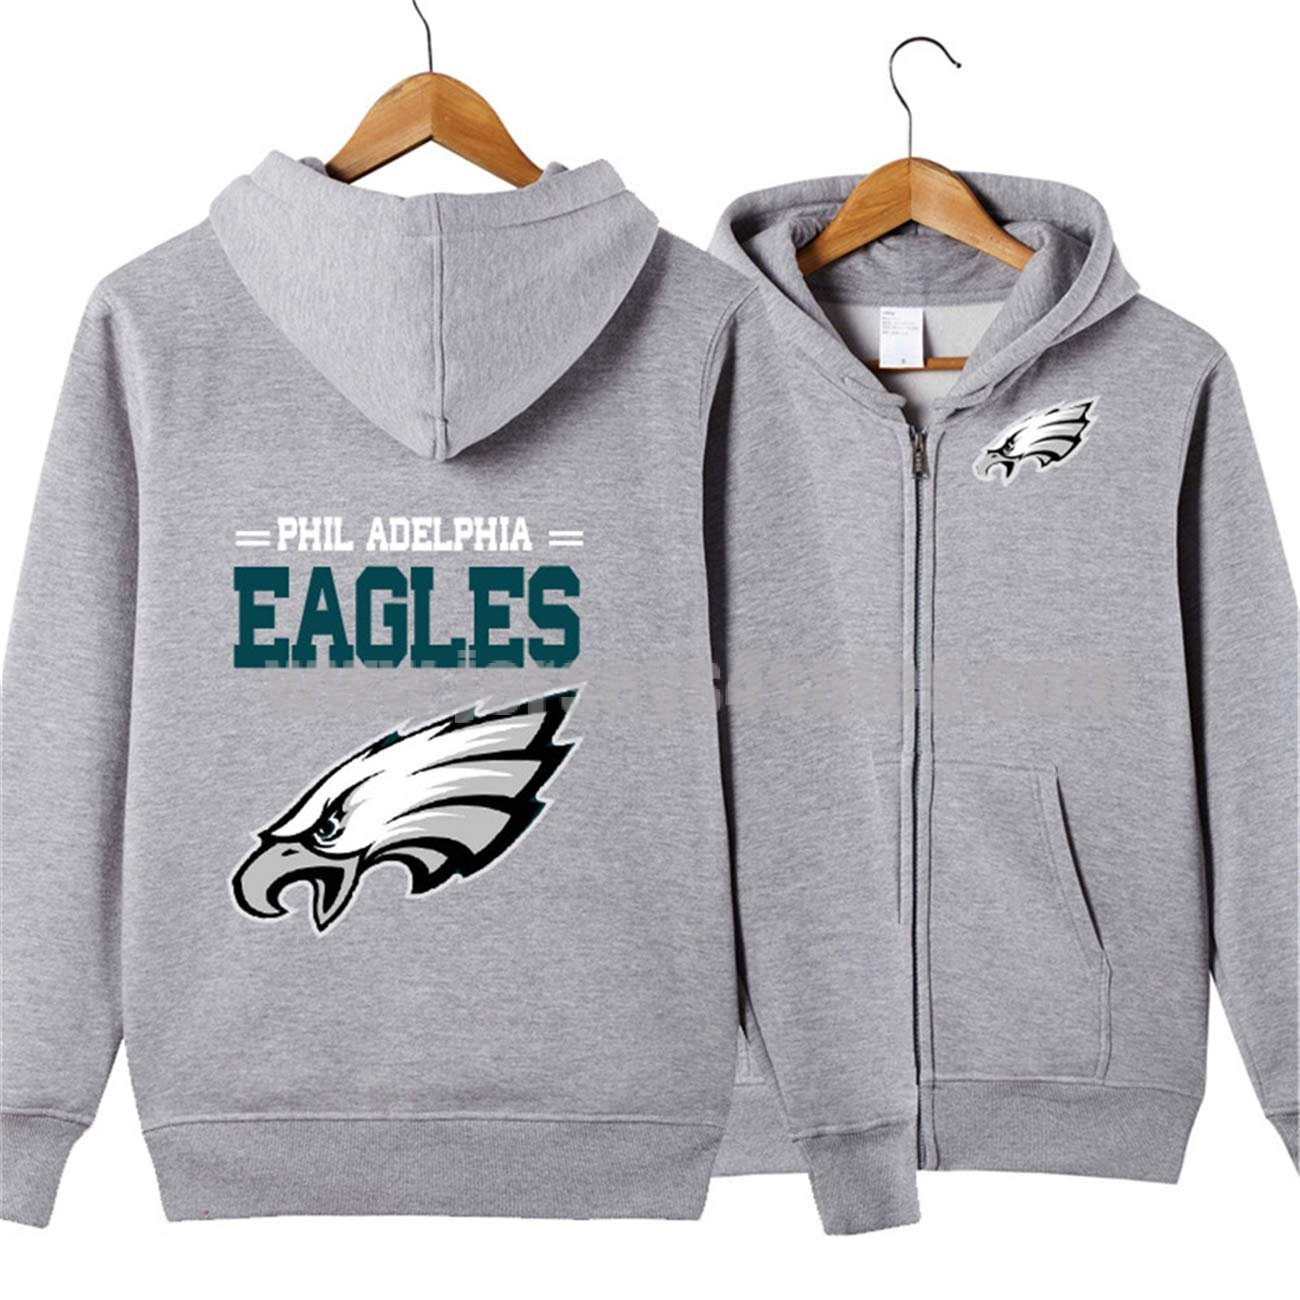 Men's Long Sleeve Hooded Letters Print Philadelphia Eagles Football Team Solid Color Zipper HOODIES